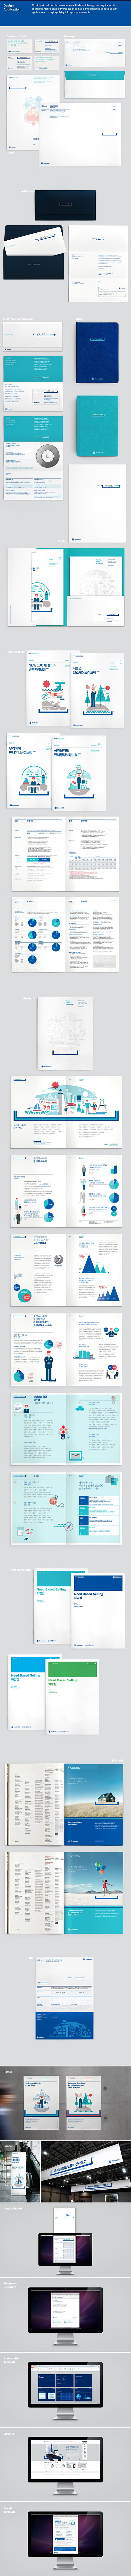 """Prudential Brand Slogan """"Plan Your Story"""" Brand Experie on Behance"""